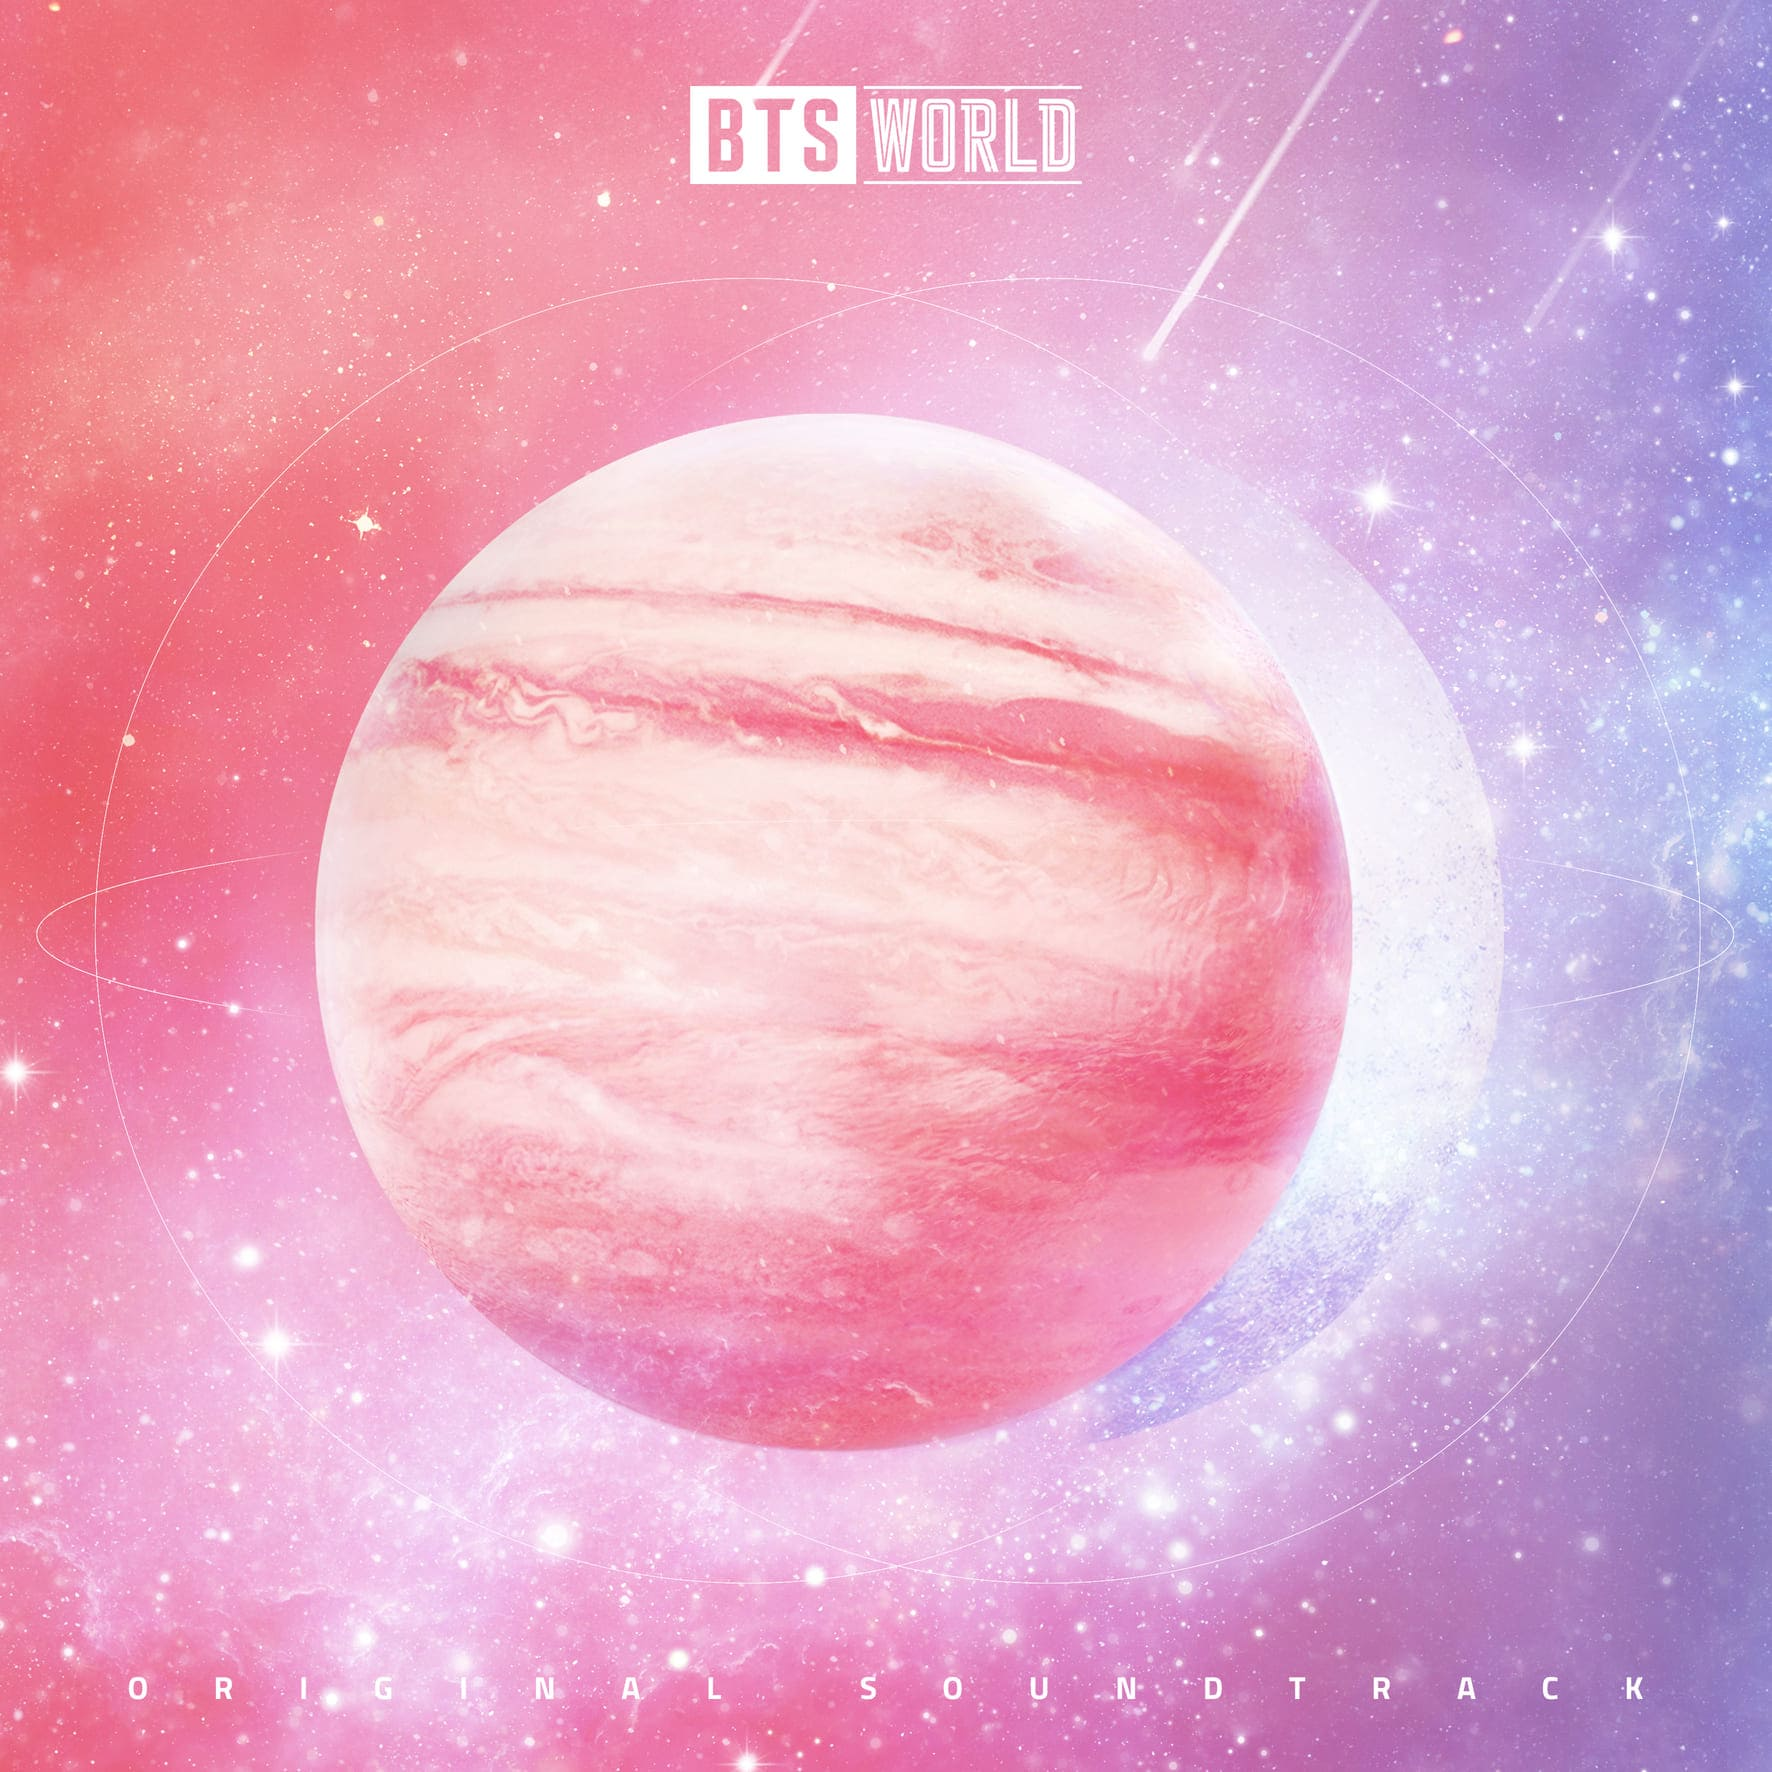 BTS World Original Soundtrack